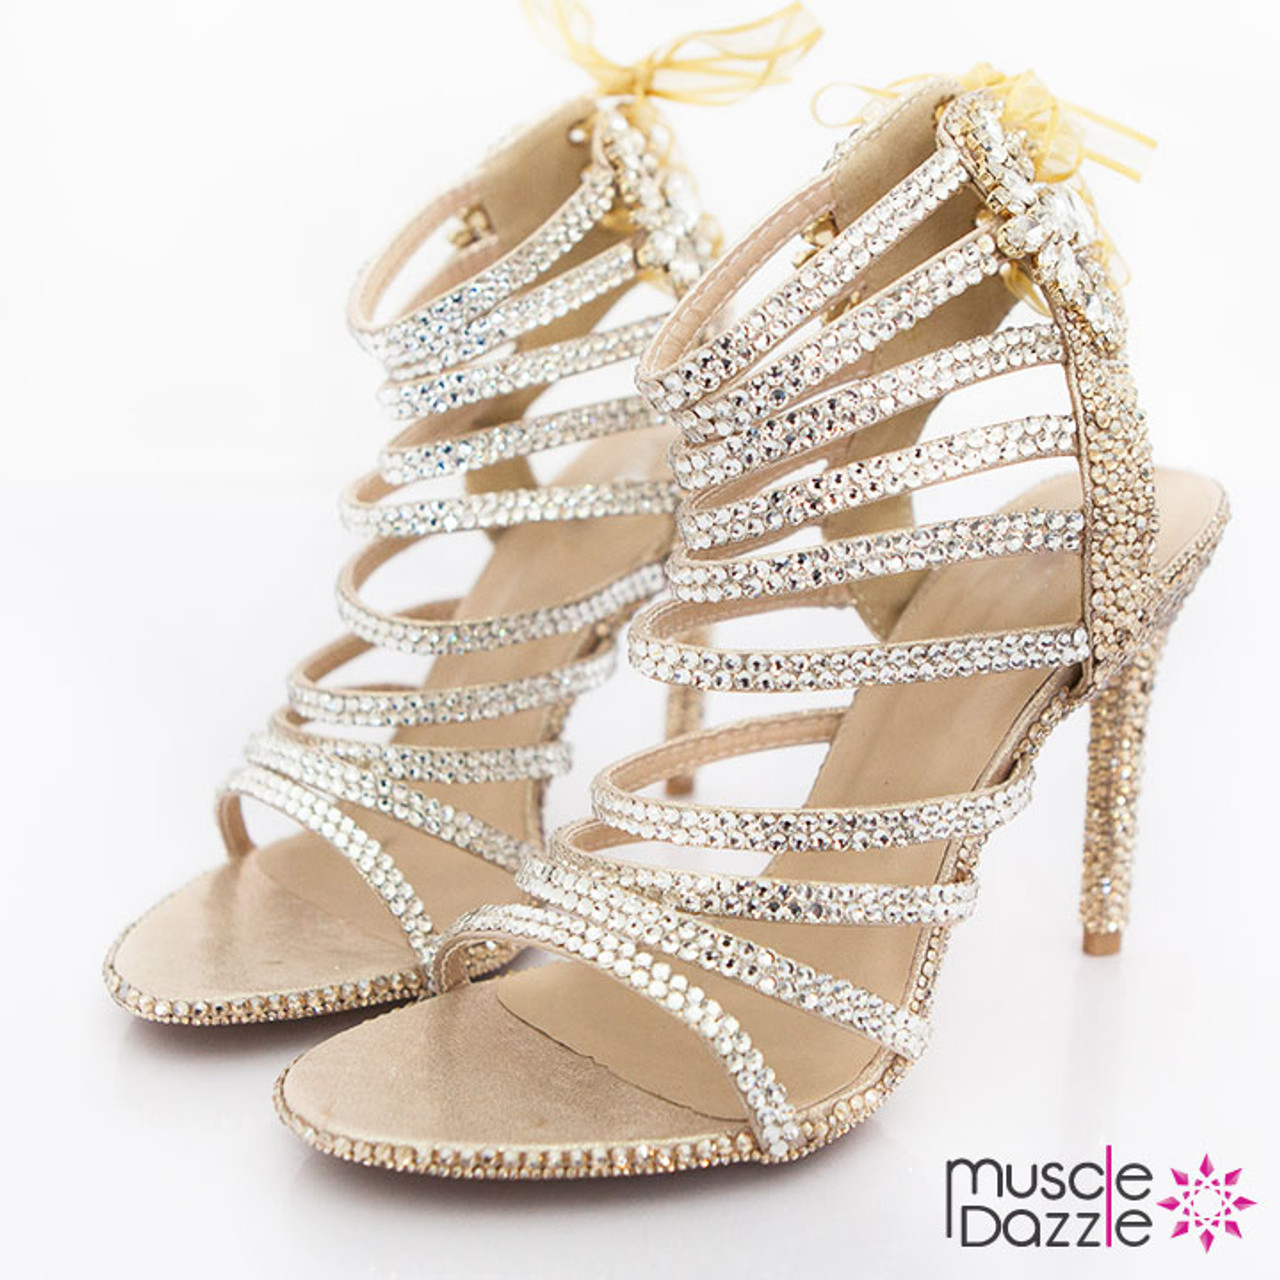 Gold and Silver Crystal High Heel Sandals